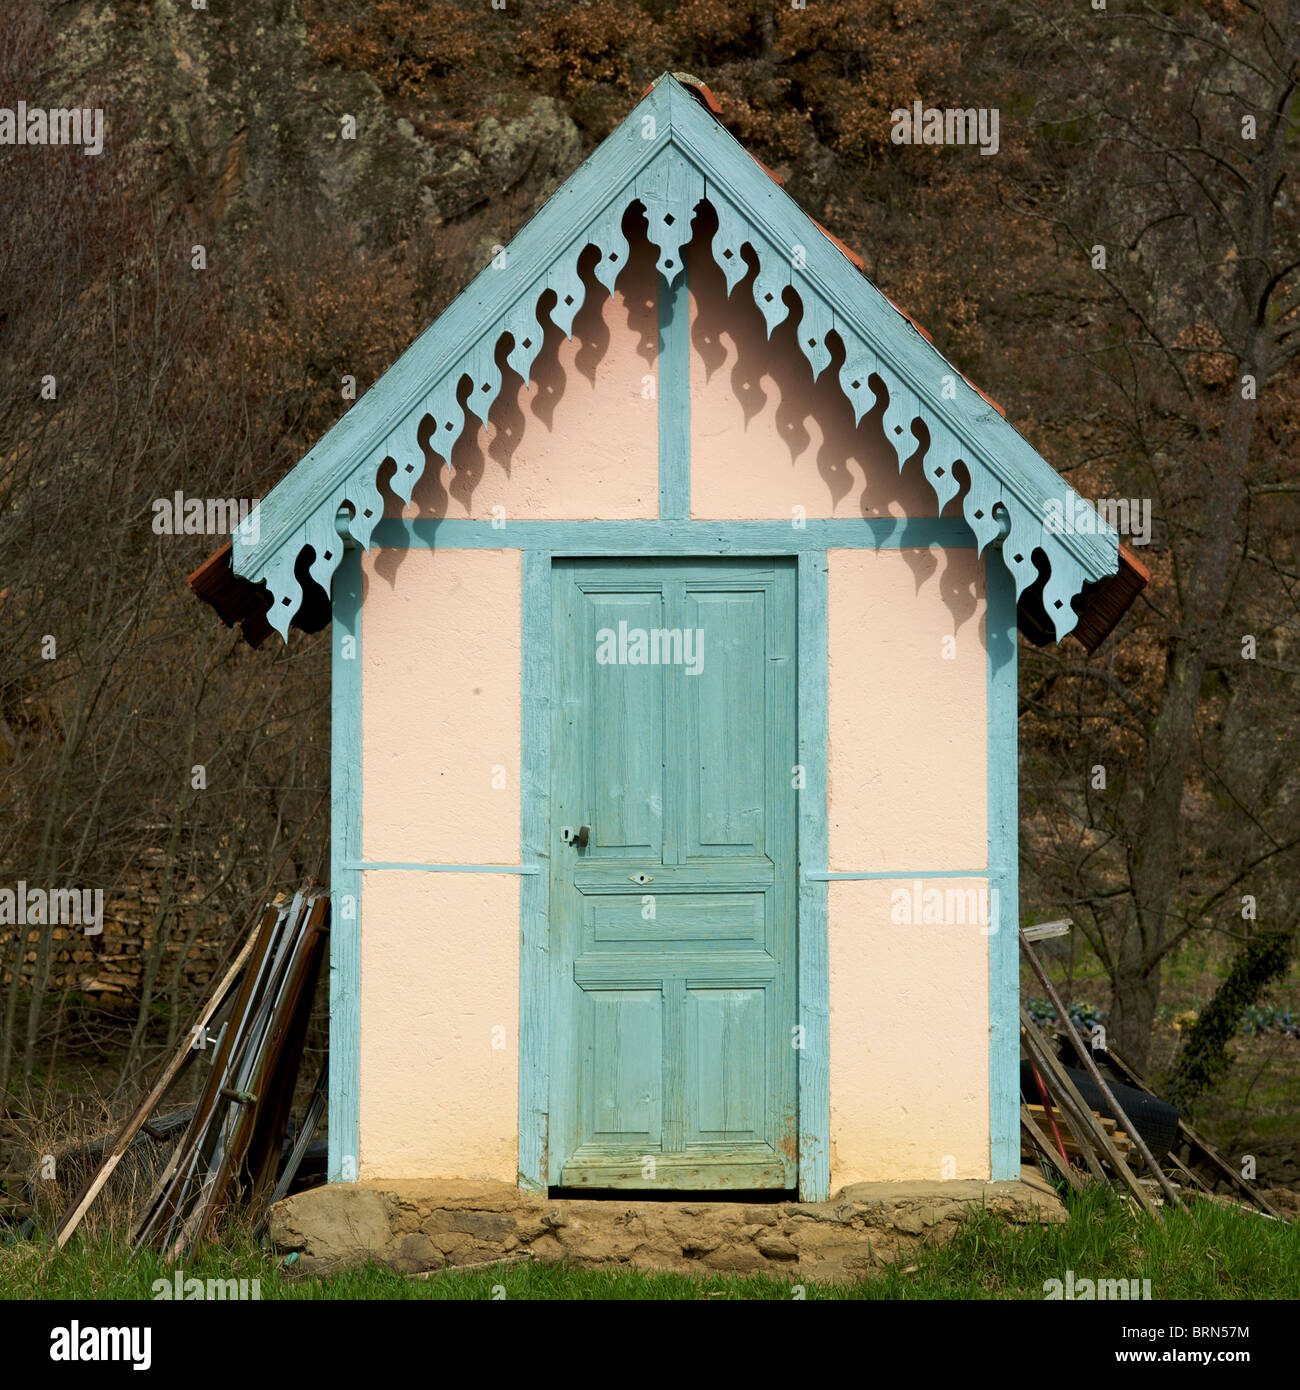 Pretty garden shed - Stock Image